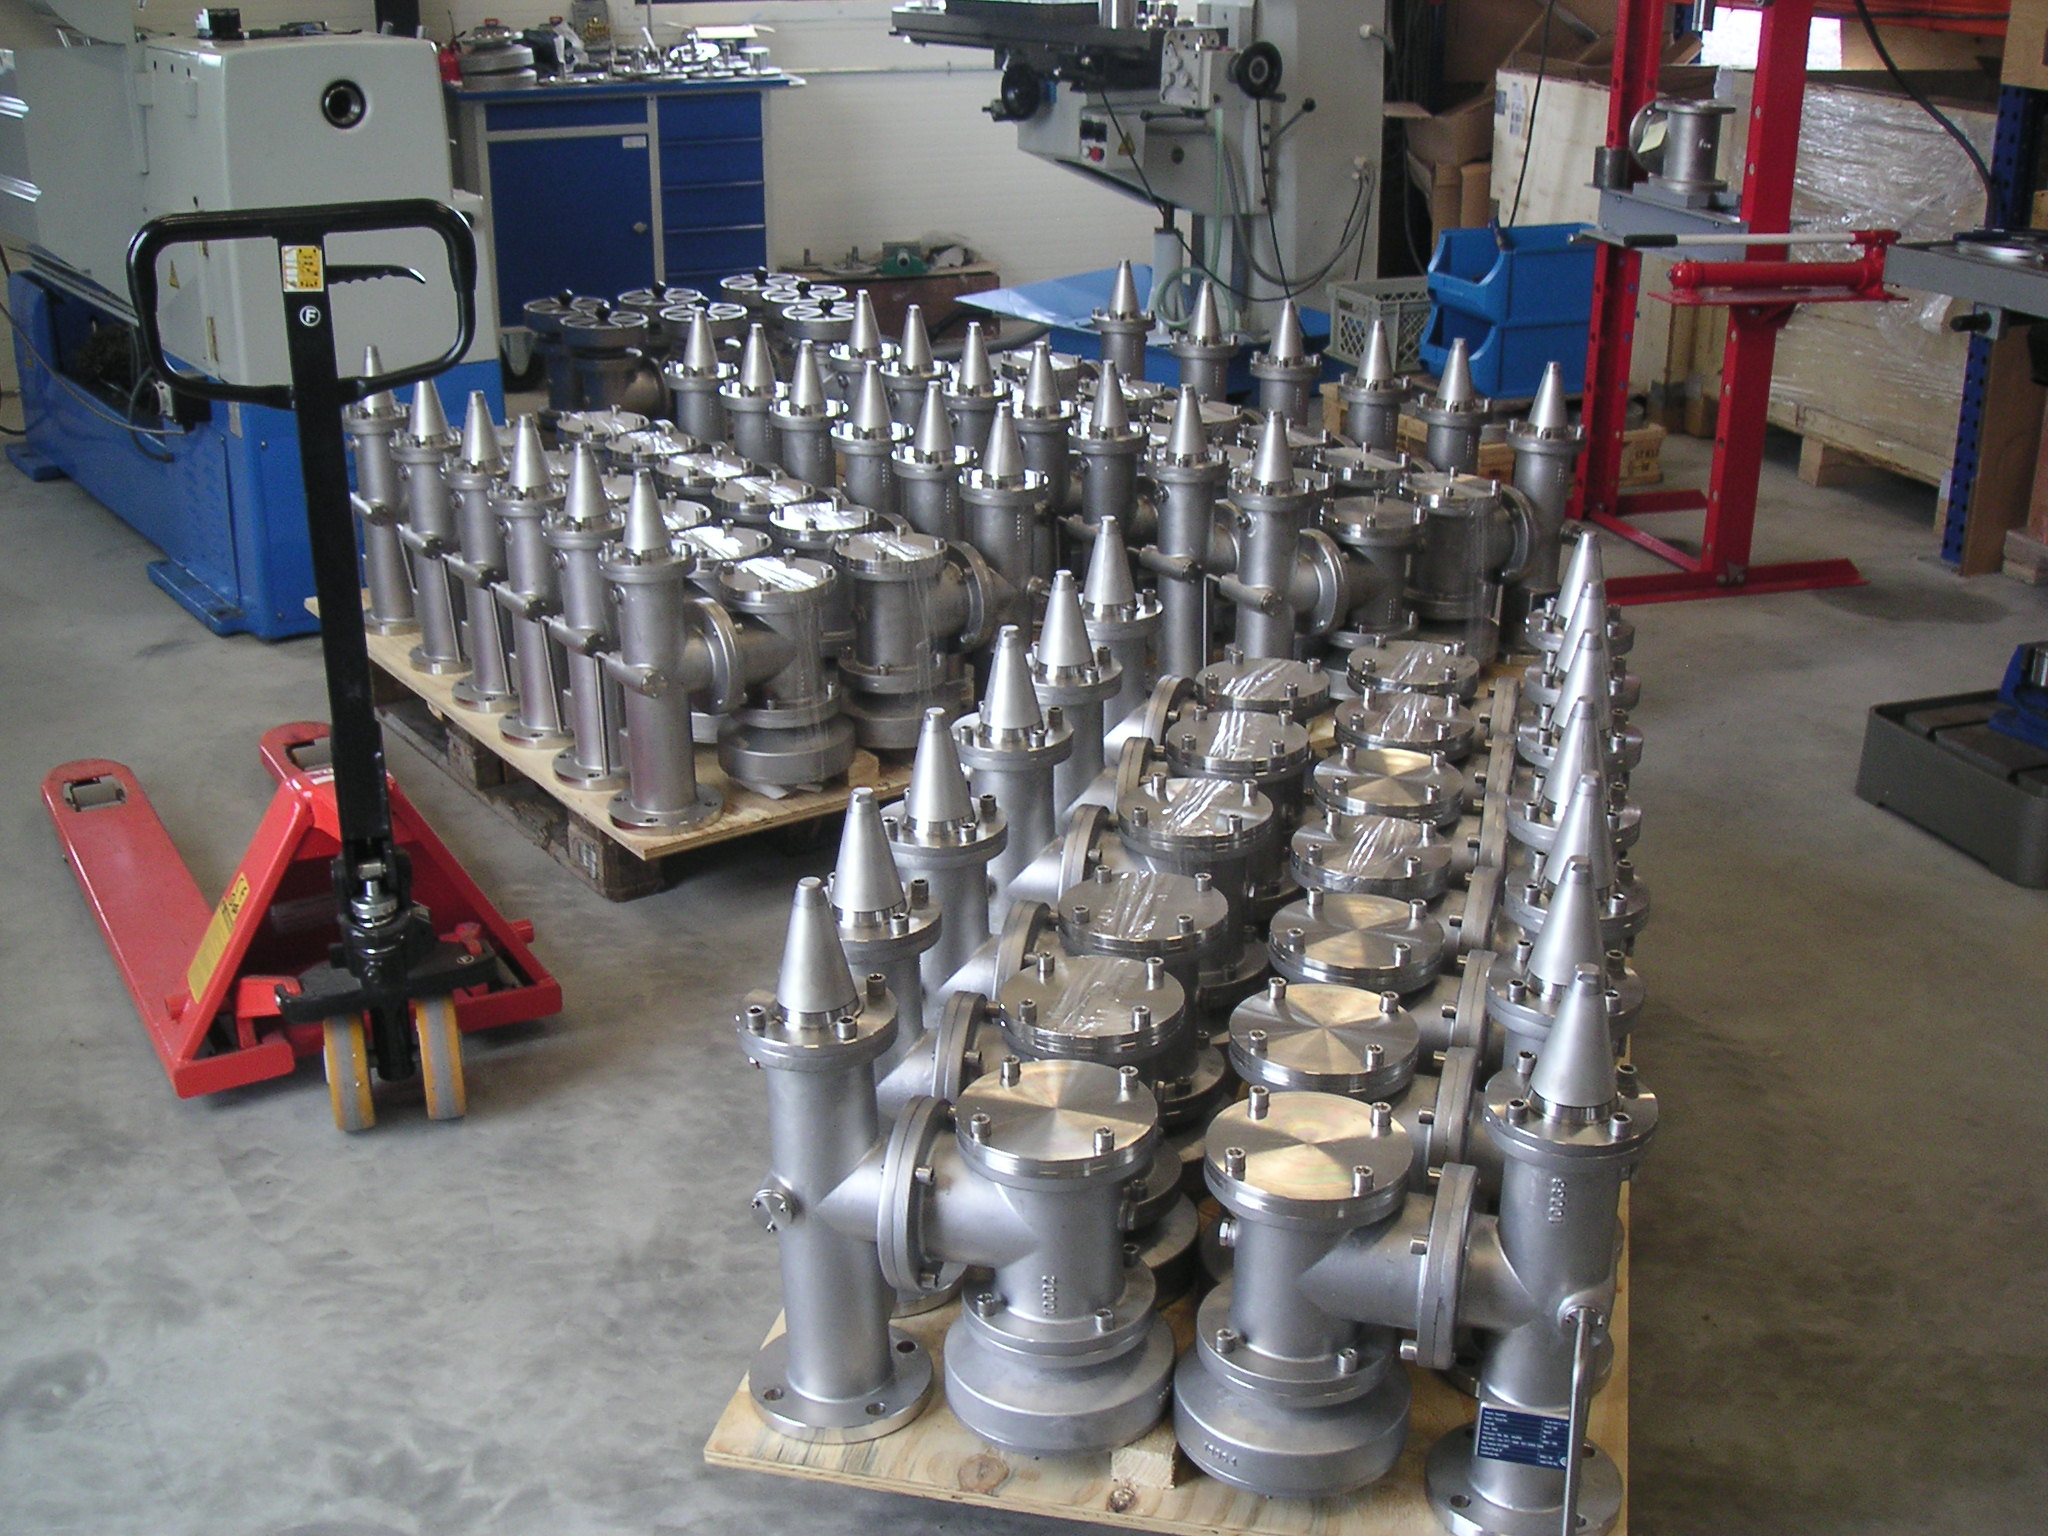 IMG_0279-e1397401077637-768x1024  Products Valves 006